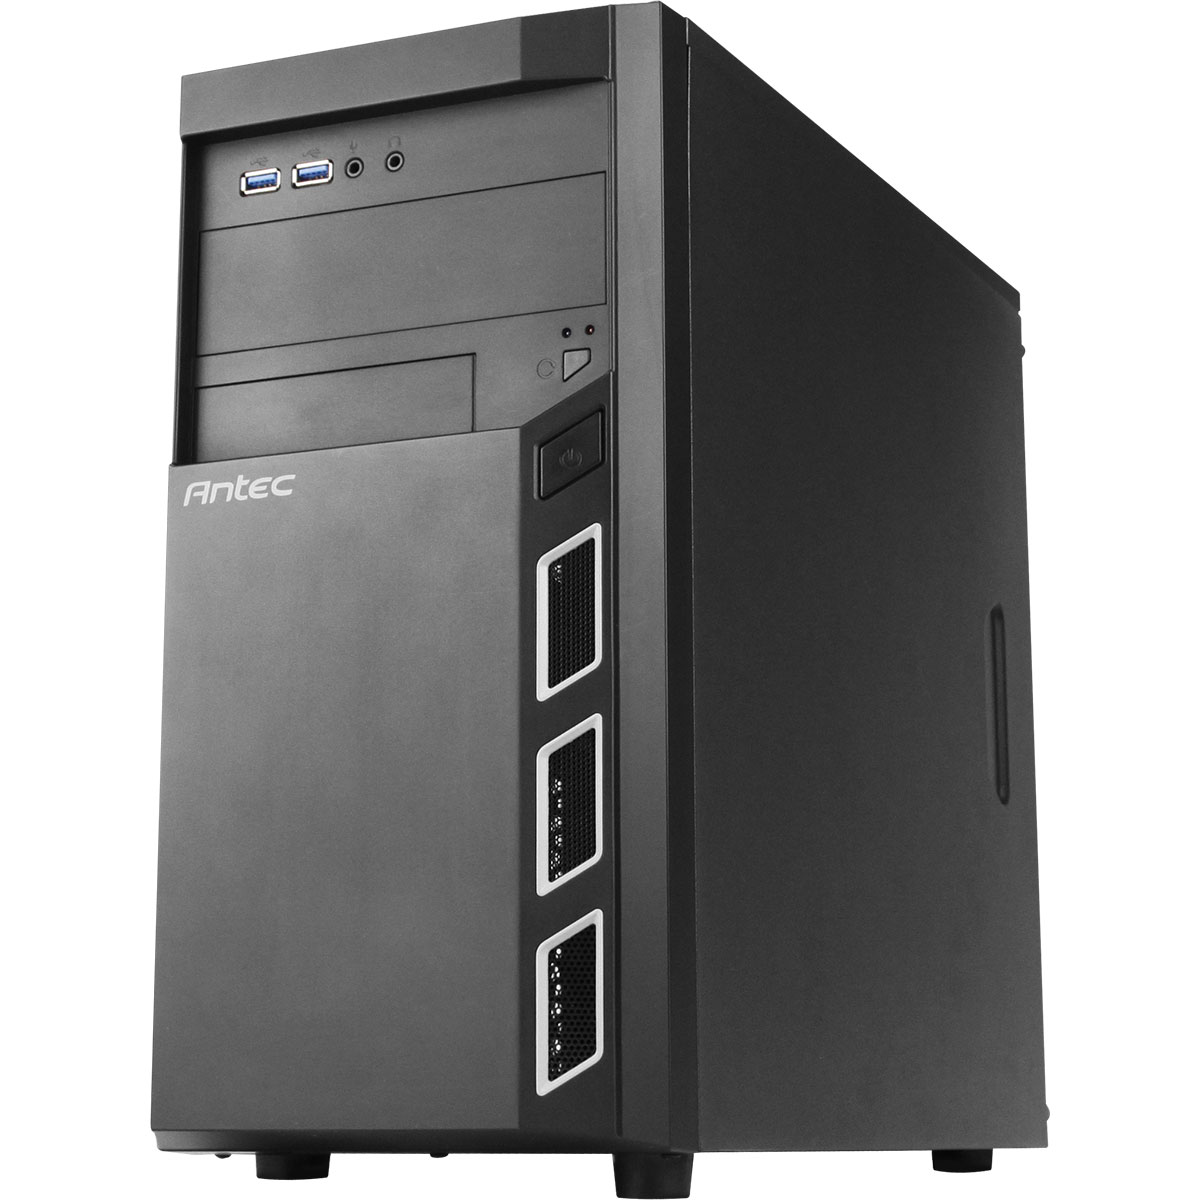 antec vsk 3000 elite u3 bo tier pc antec sur. Black Bedroom Furniture Sets. Home Design Ideas